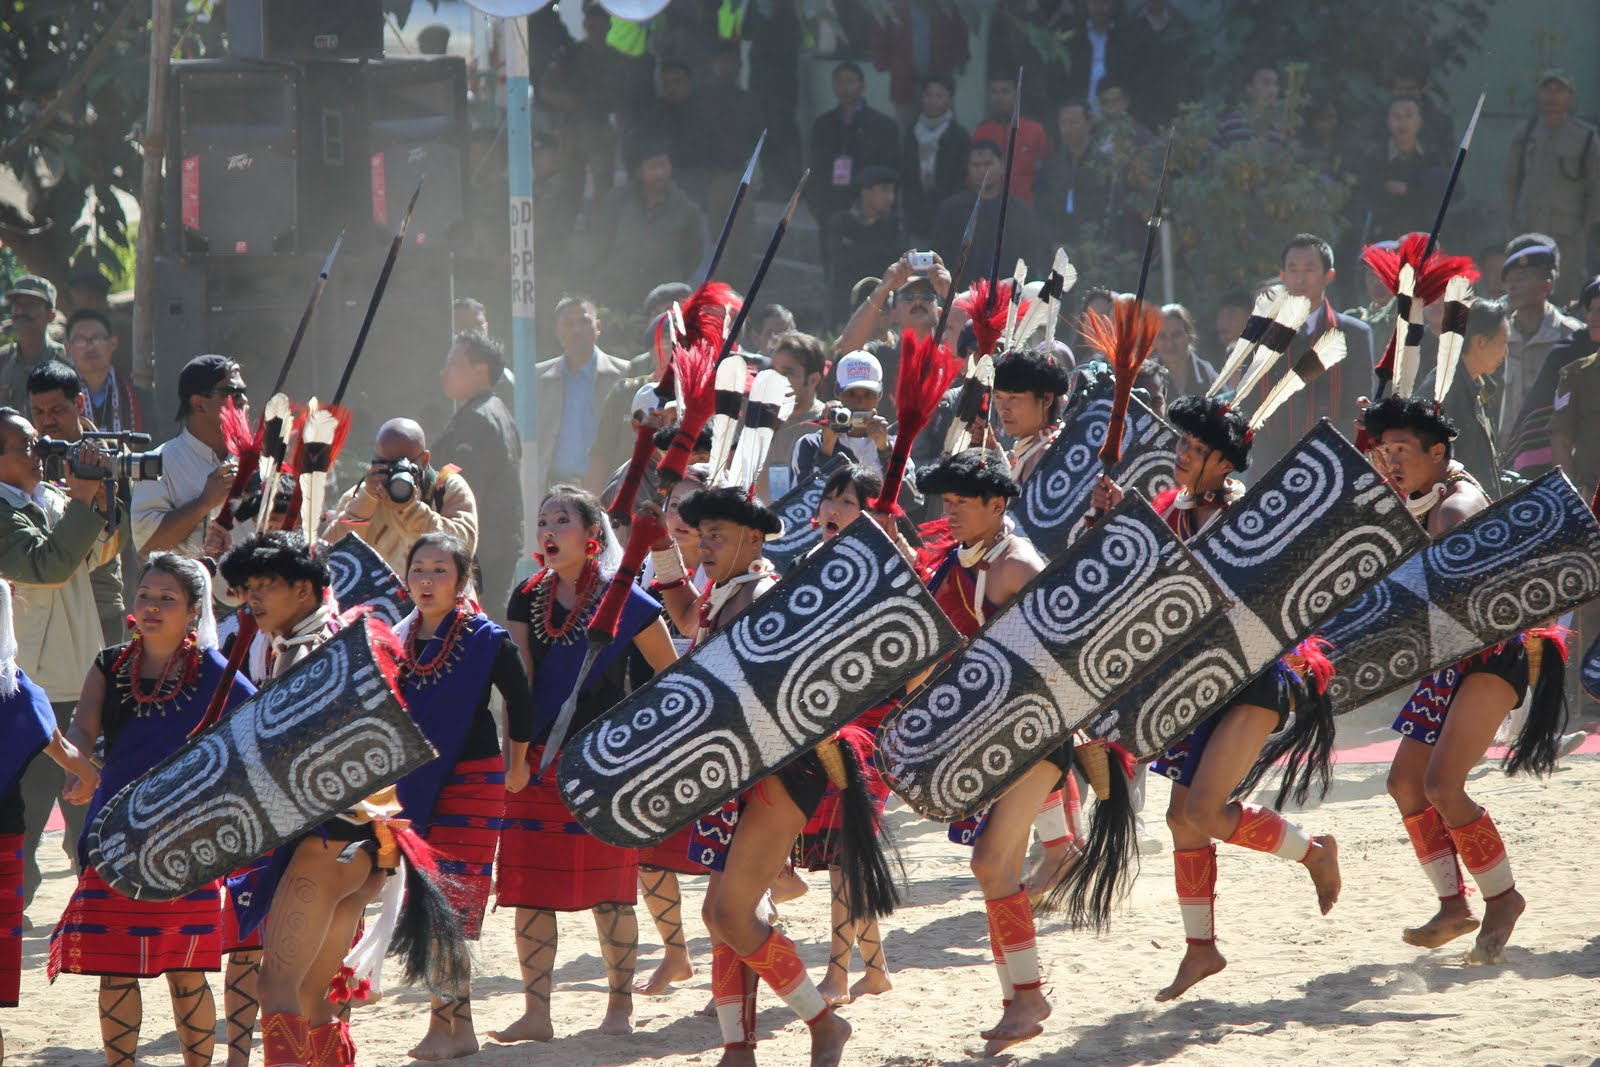 Hornbill Festival of Nagaland Tour Package – Famous Cultural Festival of Northeast India  Hornbill Festival of Nagaland Tour Package: Overview Nagaland is famous land of festivals which is located at Myanmar Border in northeast India.  It is a home to diverse indigenous tribes with festivals and markets celebrating the different tribal culture.  Holiday Travel India is one of the best Travel agency brought to you Hornbill Festival of Nagaland Tour Package. For Seeing its grand success and achievement at attracting tourists from far and wide from across India and abroad.  In this package we offer sightseeing with tribes at Hornbill festival and explore famous games, cuisines and dance of tribes. Grab the chance and visit Kohima and explore its rich culture tradition and much more with us at pocket friendly rates.   What is Unique in Hornbill Festival of Nagaland Tour Package and Why? Hornbill Festival of Nagaland Tour Package is unique because we provide chance to explore rich culture, tradition, festivals and be a part of Hornbill Festival which is most important festival of Nagaland with proper guideline.  Well arrange hotel/camp with night bornfire and offer to visit other famous excursion of Kohima.    Hornbill Festival of Nagaland Tour Package: Highlights One of those rare villages counted as green village of India:  Khonoma Village Eye- catching of Kohima: Japfu Peak Historical landmark dedicated to 10,000 brave soldiers Ancient village of Kohima: Bara Basti Shows fascinating arts and artifacts in Kohima: State Museum Conservation of Several Rare species in kohima: Intanki Wildlife Sanctuary